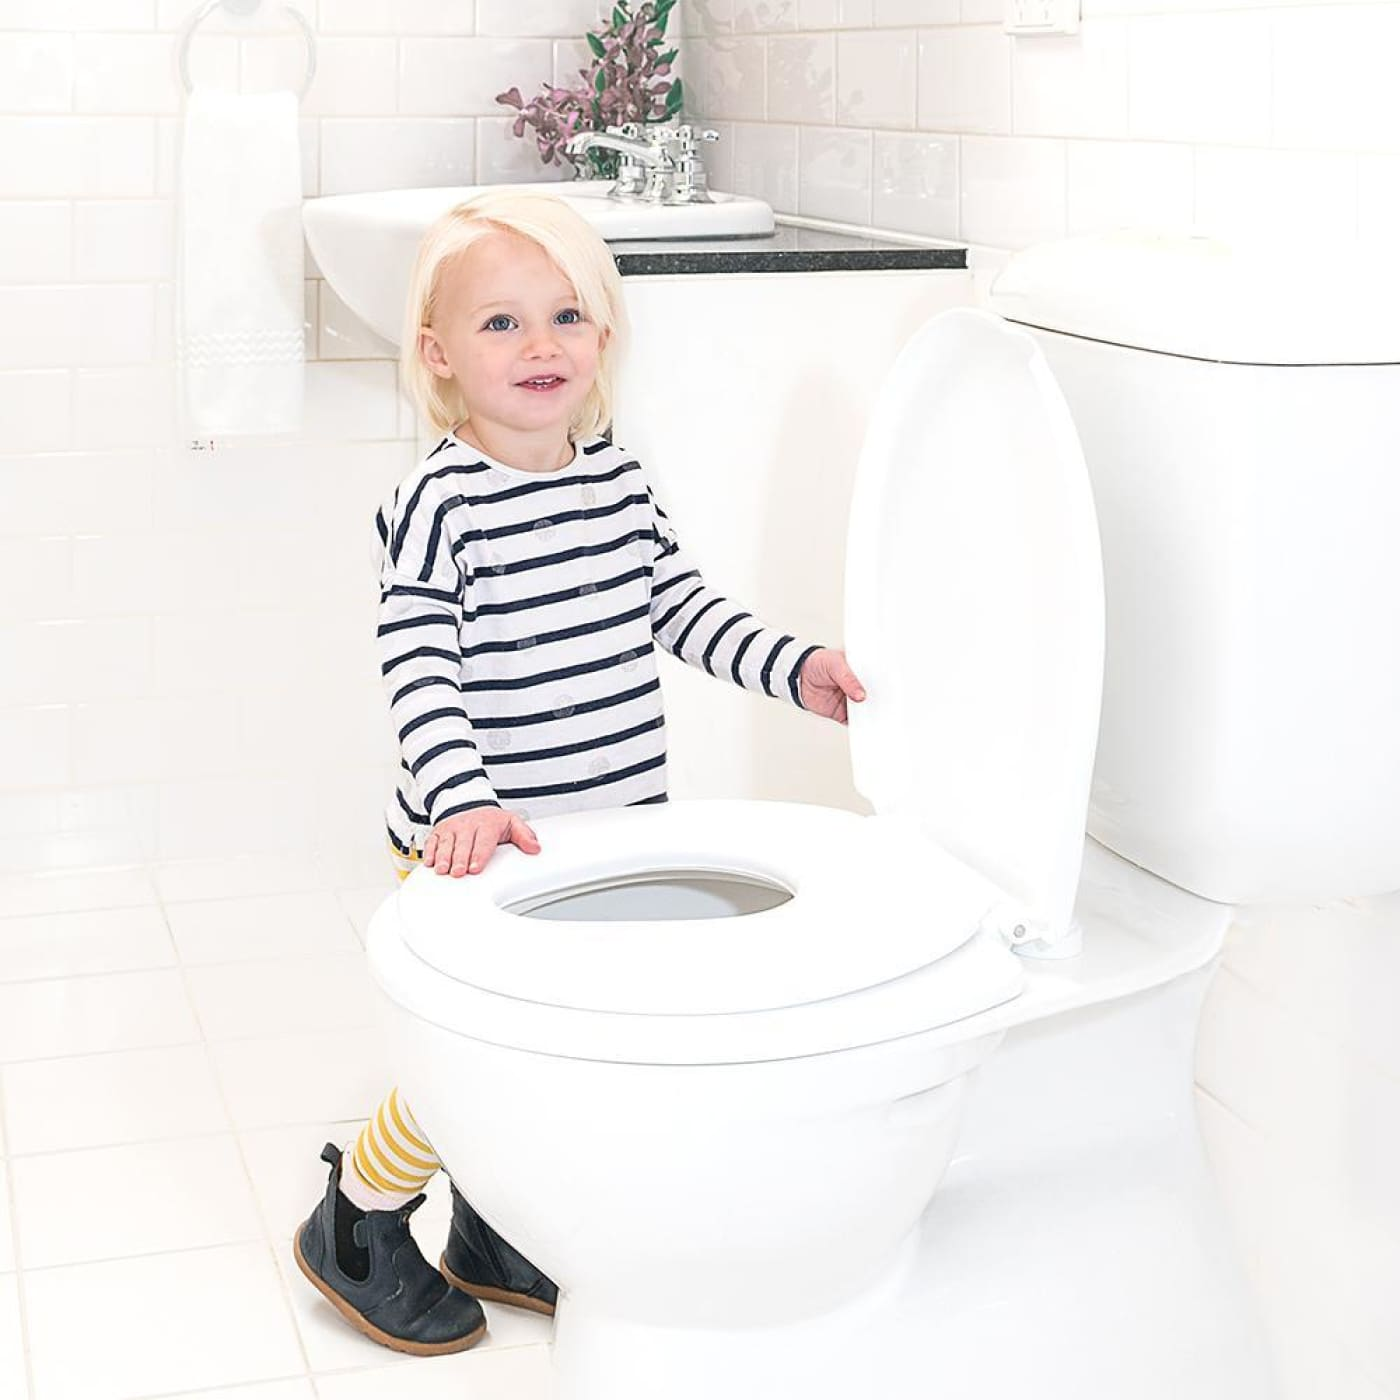 Childcare 2-in-1 Toilet Trainer - White - White - BATHTIME & CHANGING - TOILET TRAINING/STEP STOOLS